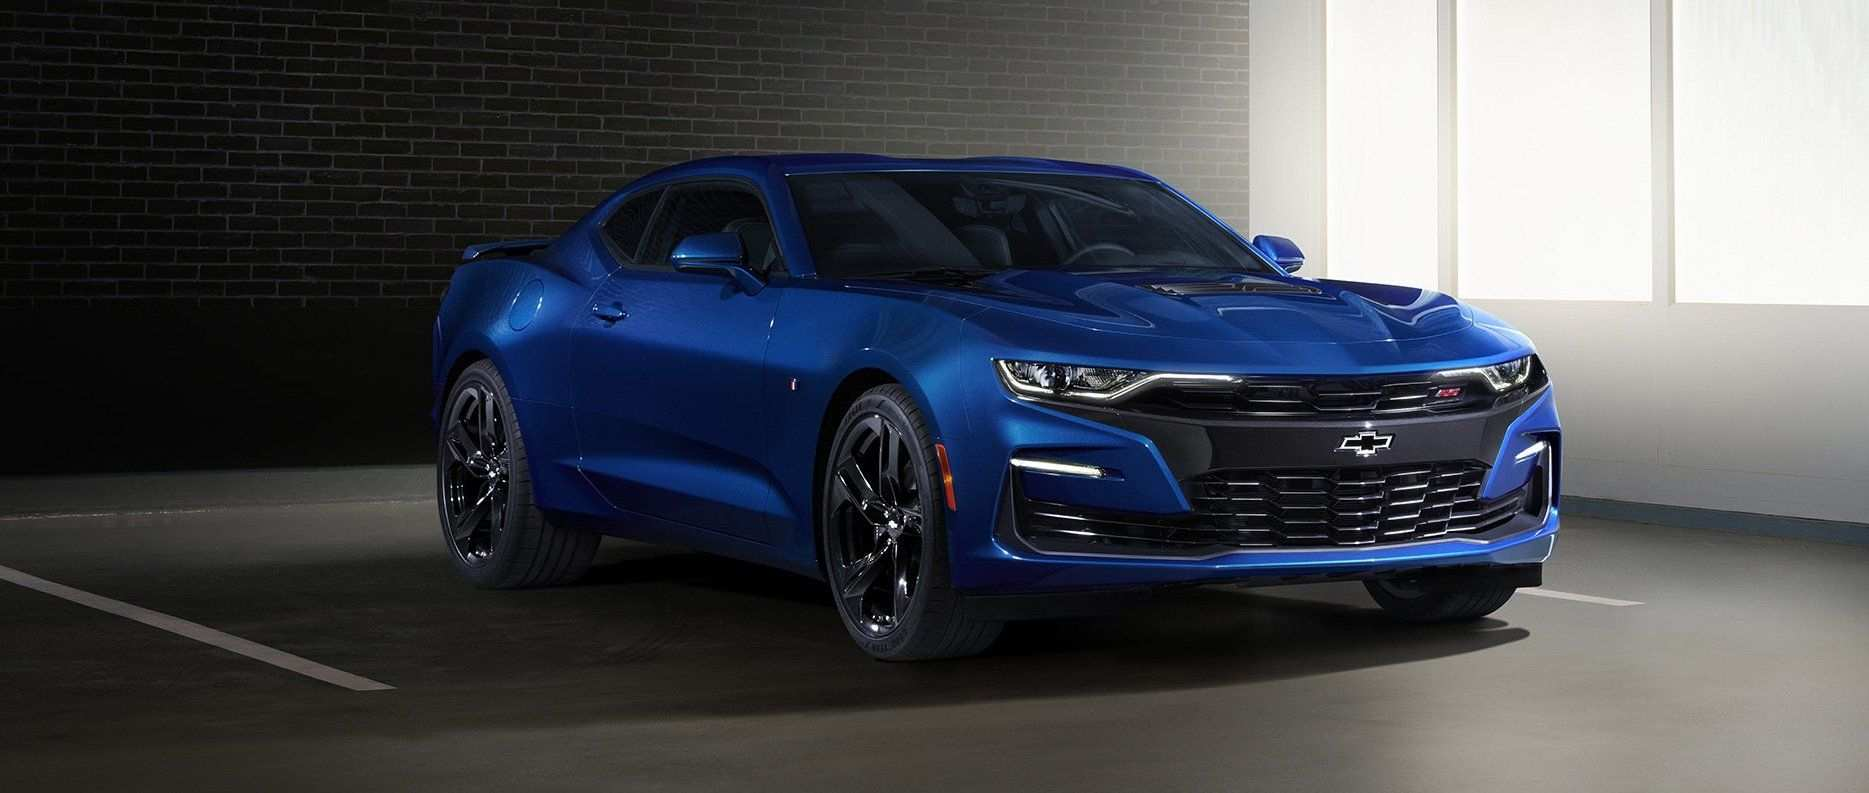 85 Gallery of 2019 Chevy Camaro Competition Arrival Research New by 2019 Chevy Camaro Competition Arrival